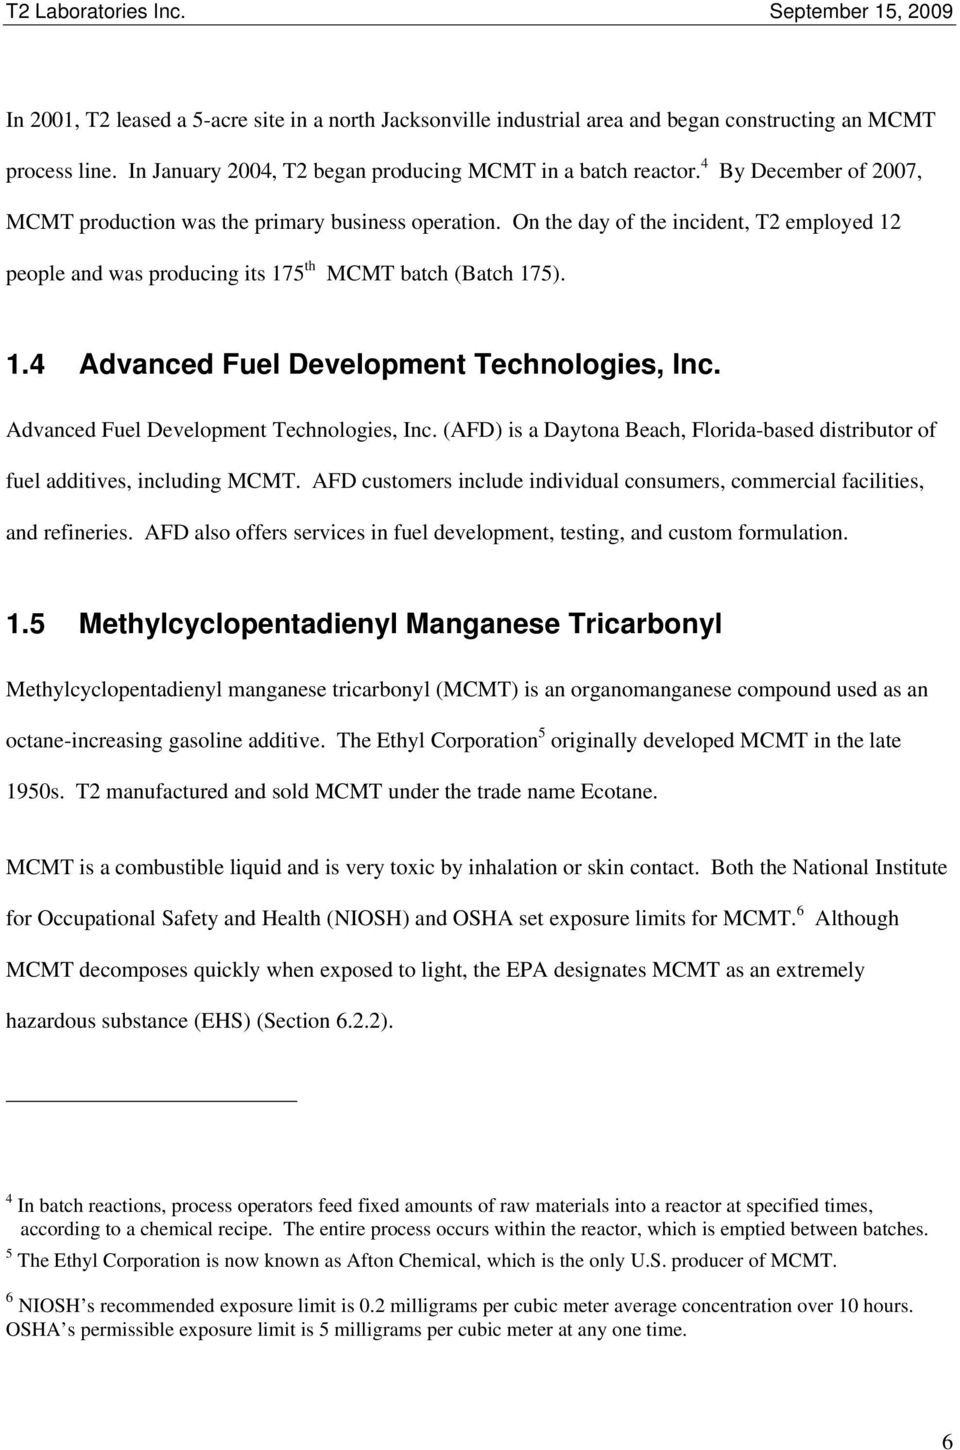 Advanced Fuel Development Technologies, Inc. (AFD) is a Daytona Beach, Florida-based distributor of fuel additives, including MCMT.